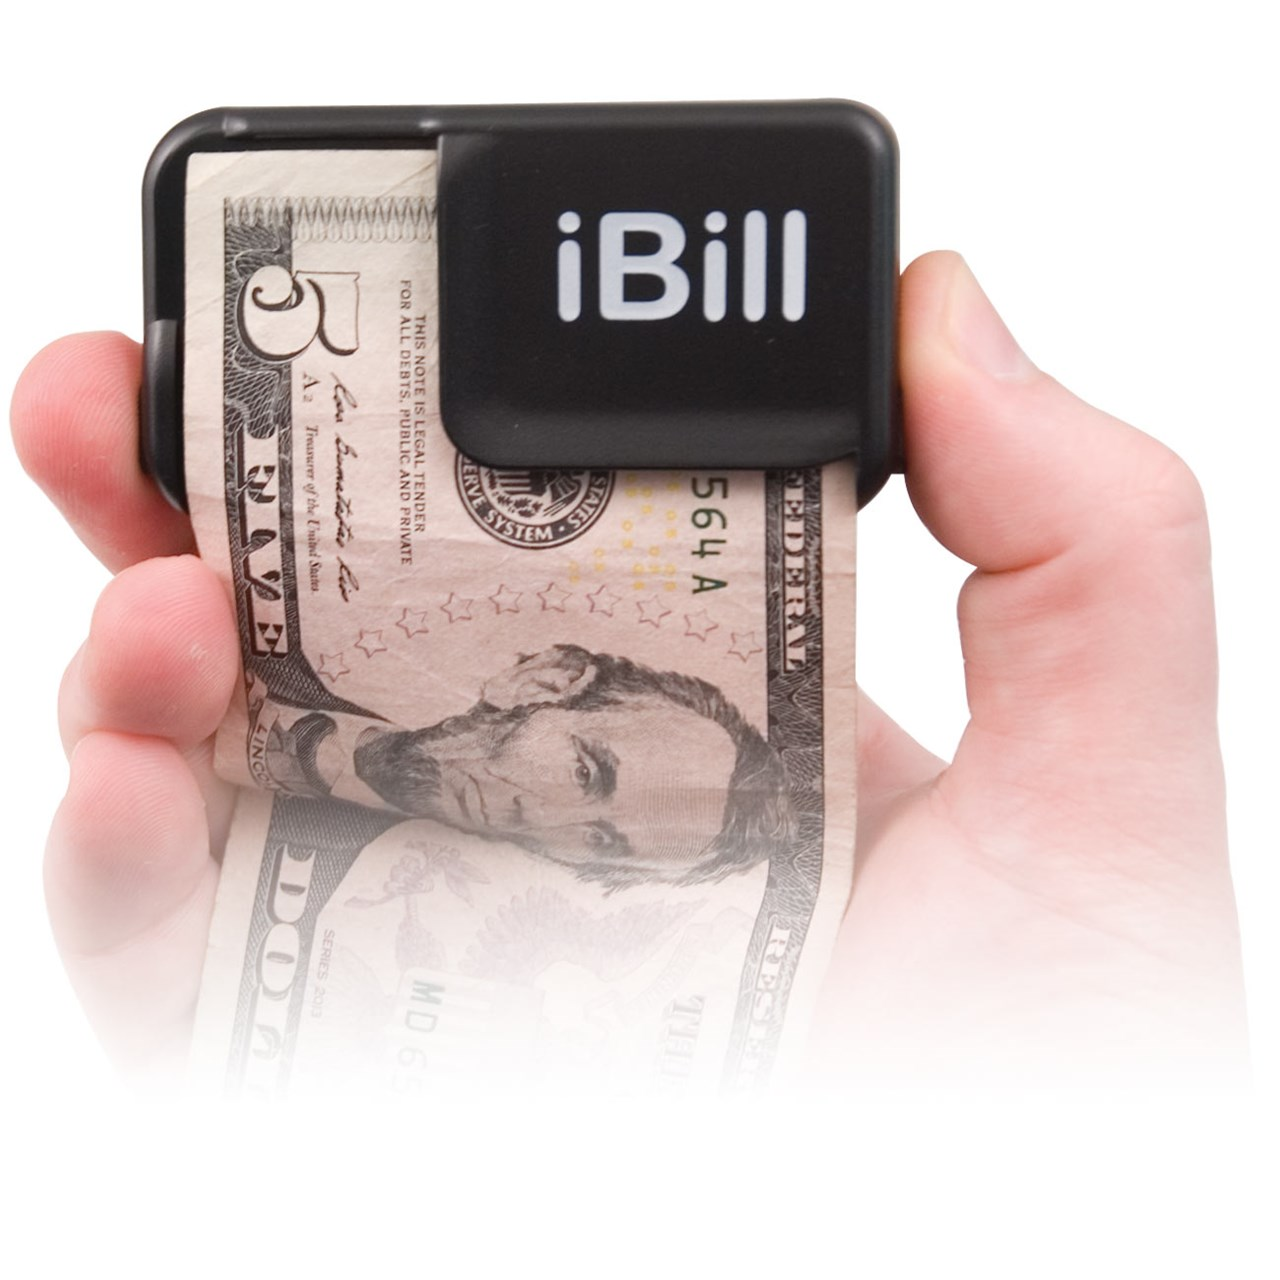 iBill Money Identifier